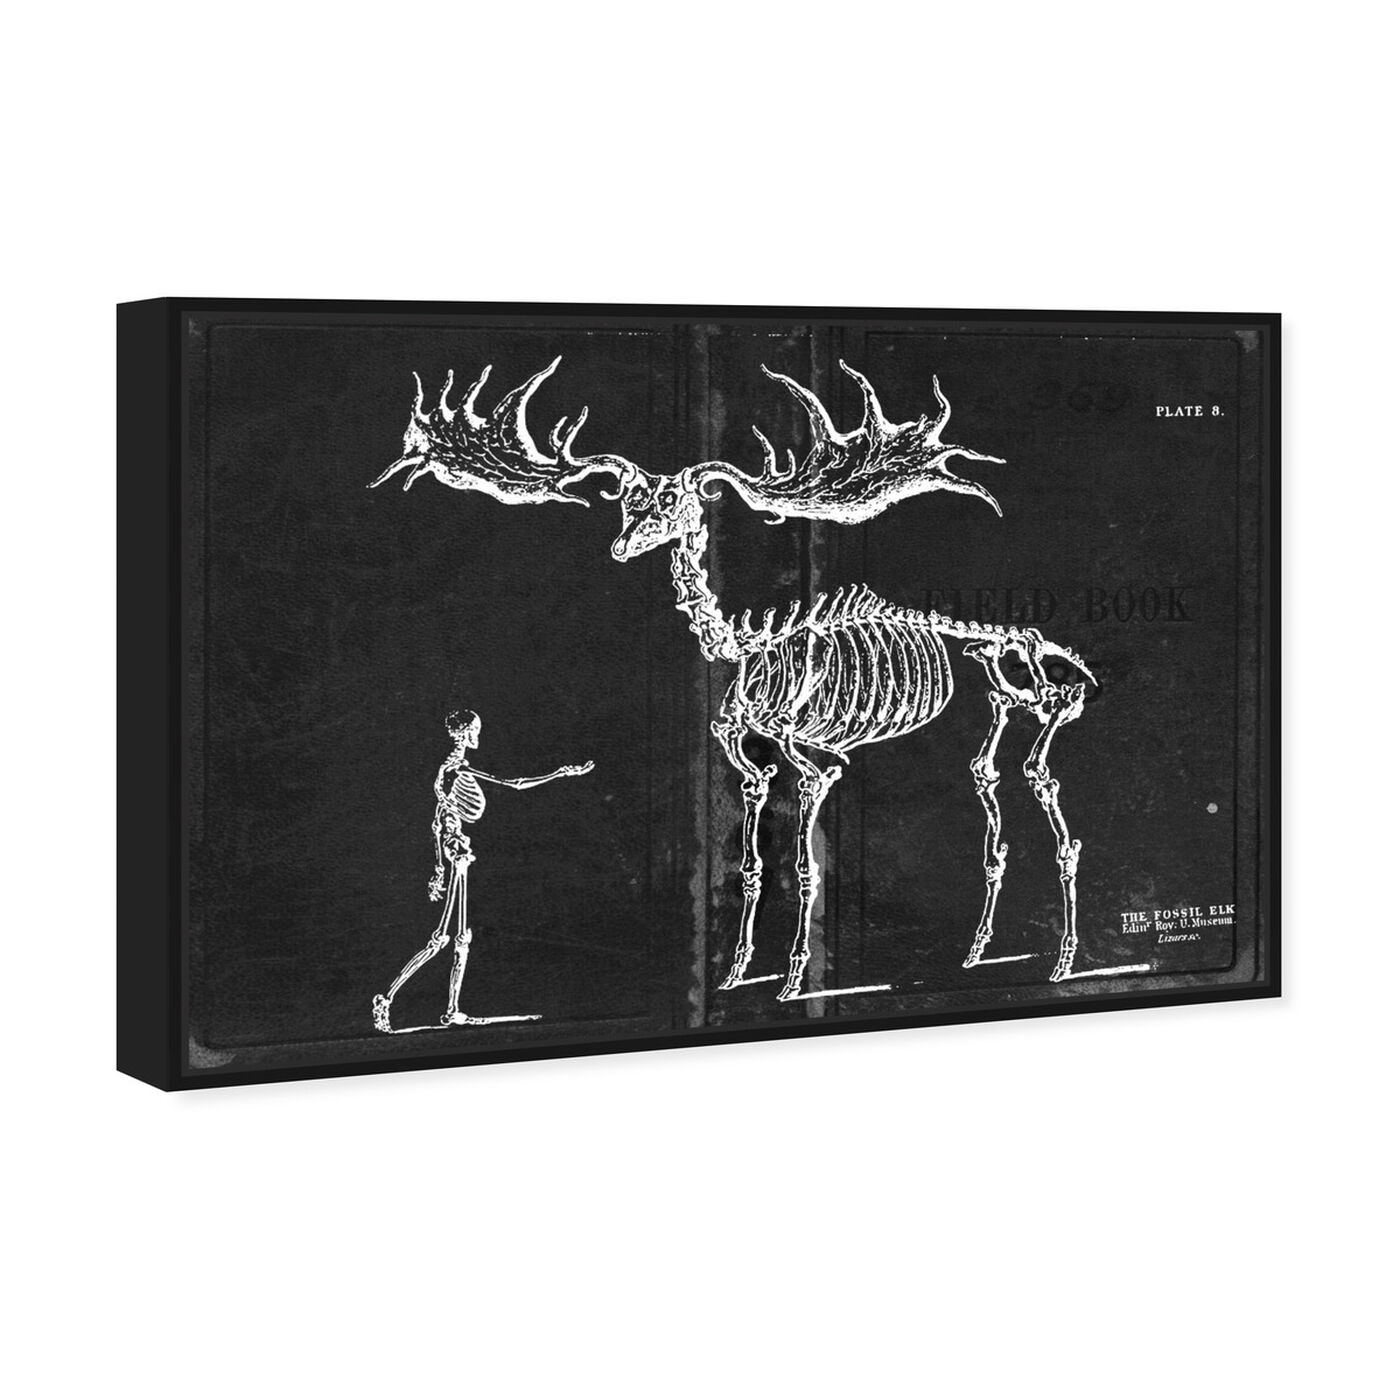 Angled view of Fossil Elk 1830 featuring animals and skeletons art.